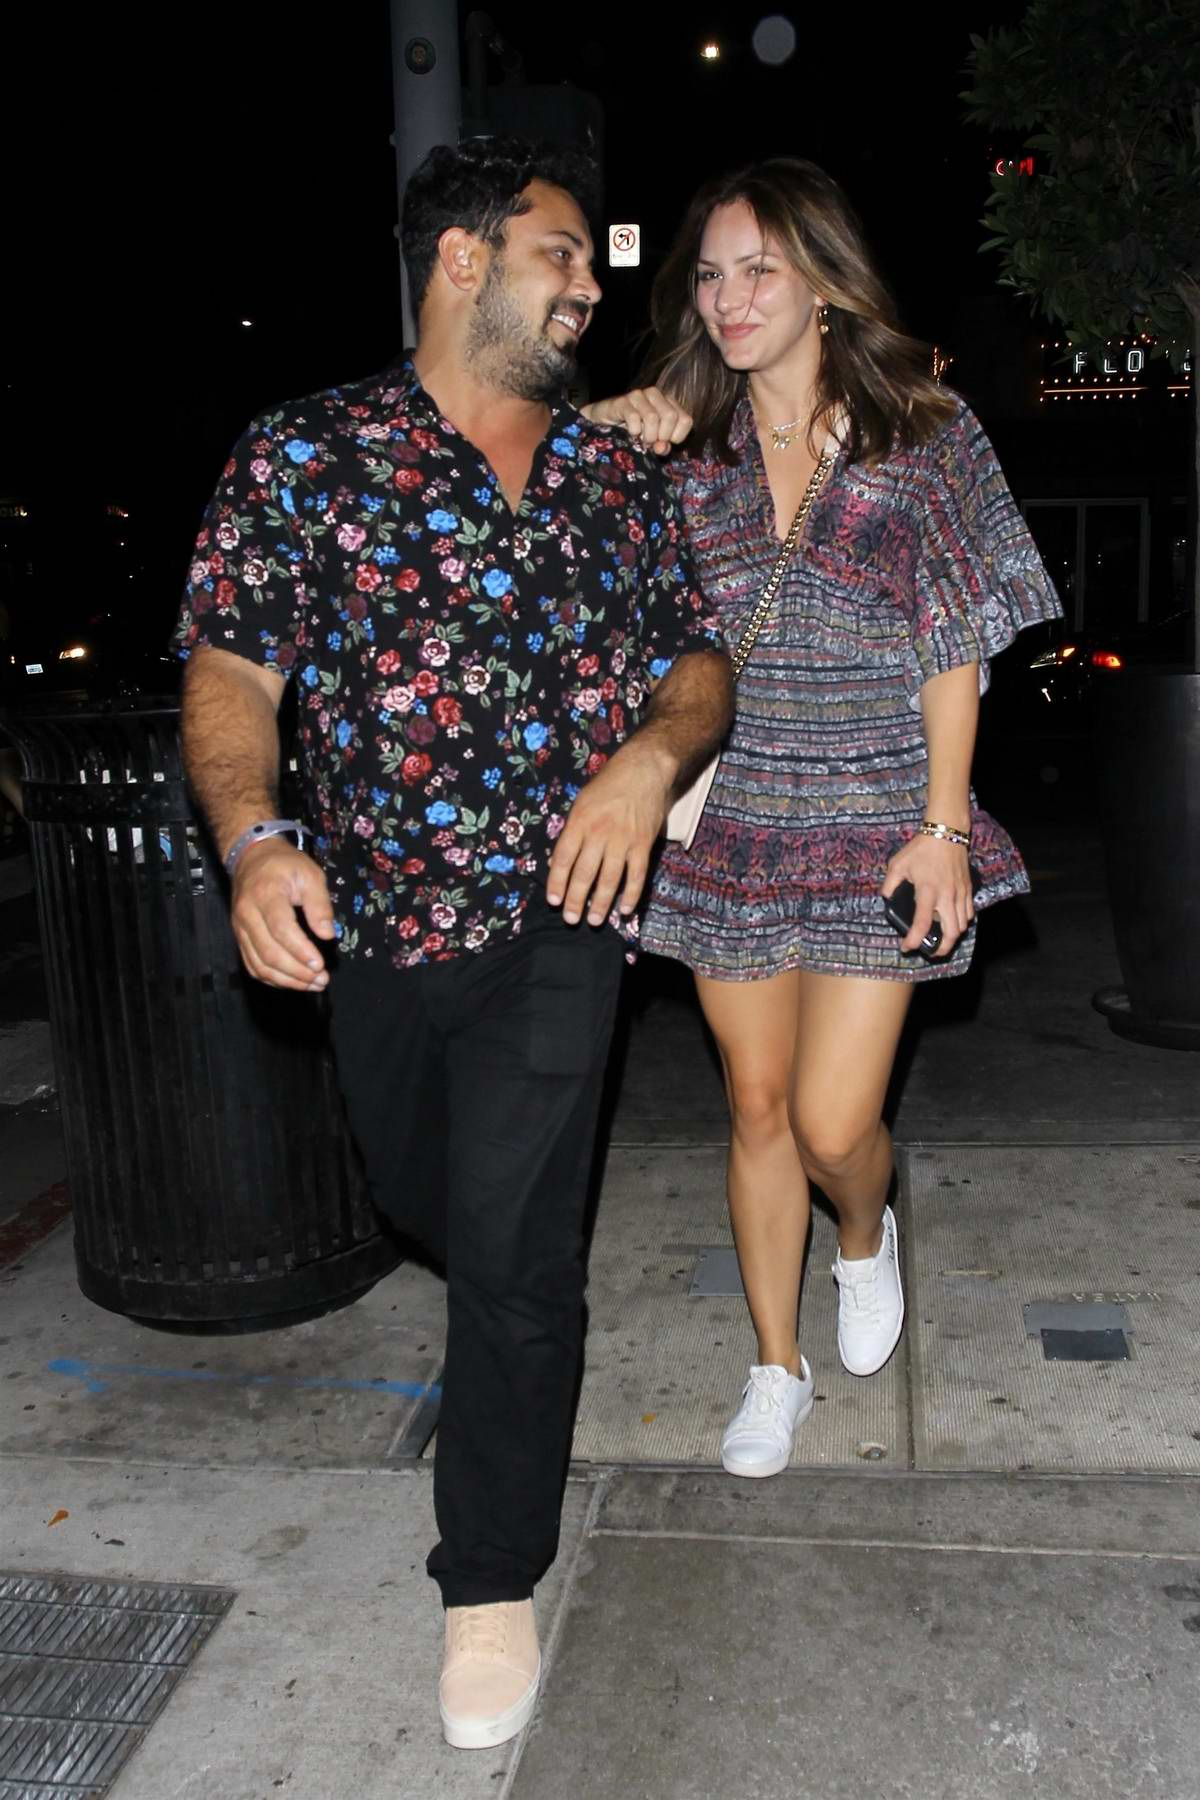 Katharine McPhee leaving the Dream Hotel with a friend in Los Angeles